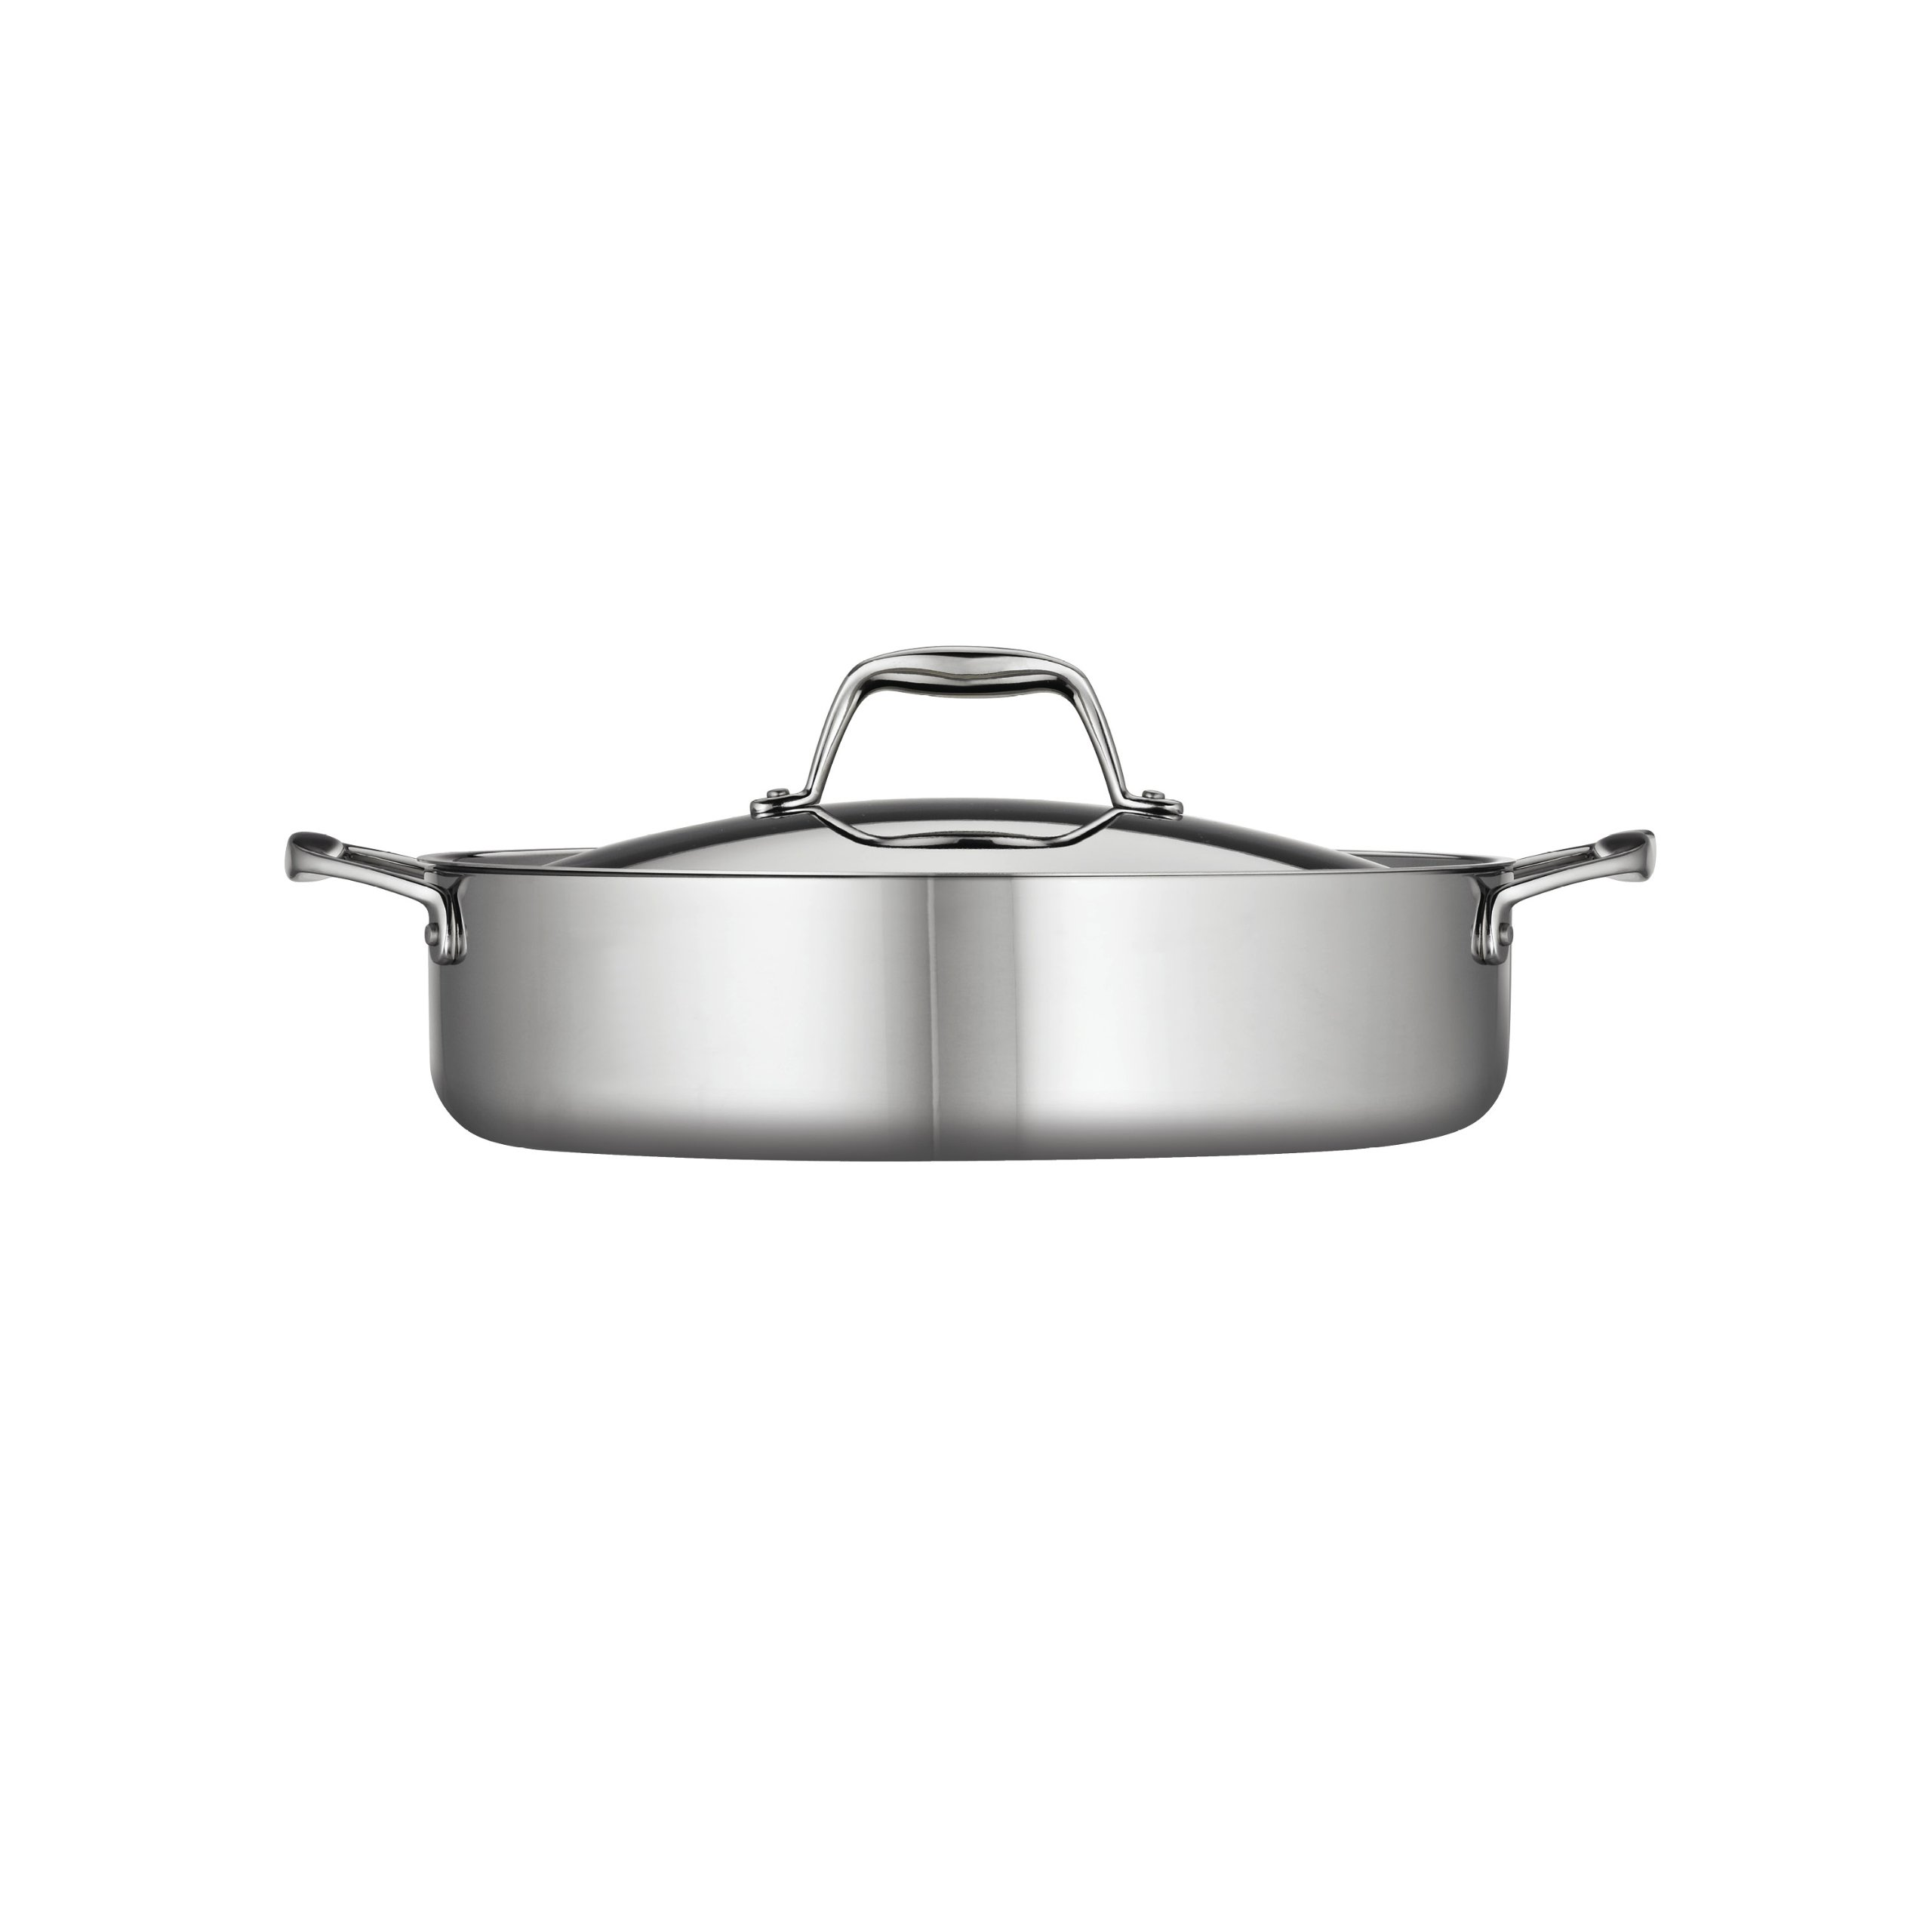 Tramontina 80116/015DS Gourmet Stainless Steel Induction-Ready Tri-Ply Clad Covered Braiser, 5-Quart, NSF-Certified, Made in Brazil by Tramontina (Image #2)